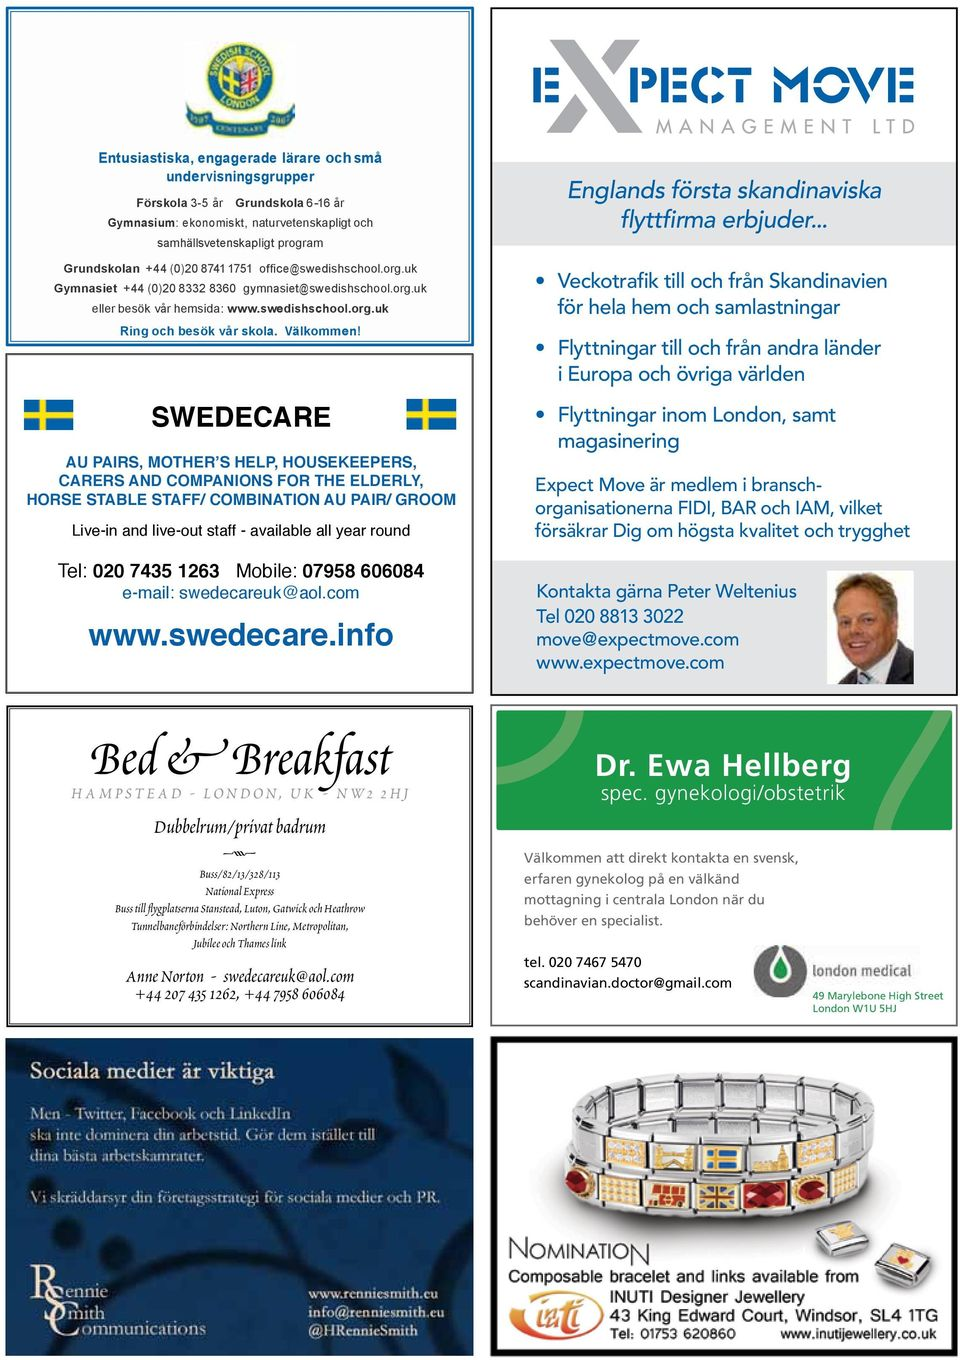 SWEDECARE AU AU PAIRS, PAIRS, MOTHER'S MOTHER'S HELP, HELP, HOUSEKEEPERS, HOUSEKEEPERS, CARERS CARERS AND AND COMPANIONS COMPANIONS FOR FOR THE THE ELDERLY, ELDERLY, HORSE STABLE STAFF/ COMBINATION